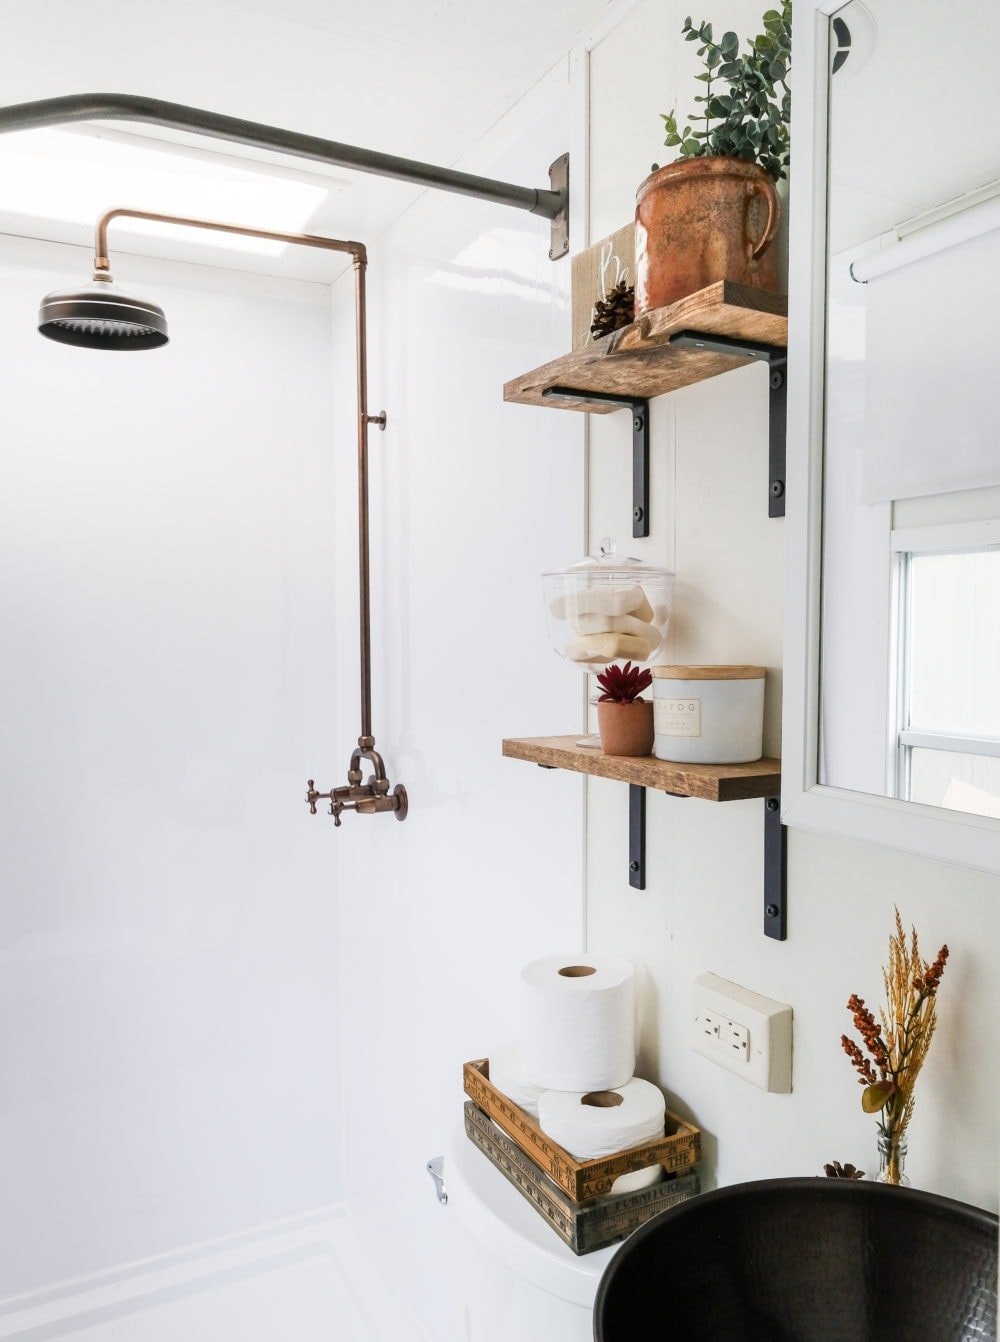 RV bathroom remodel with copper fixtures and open shelving